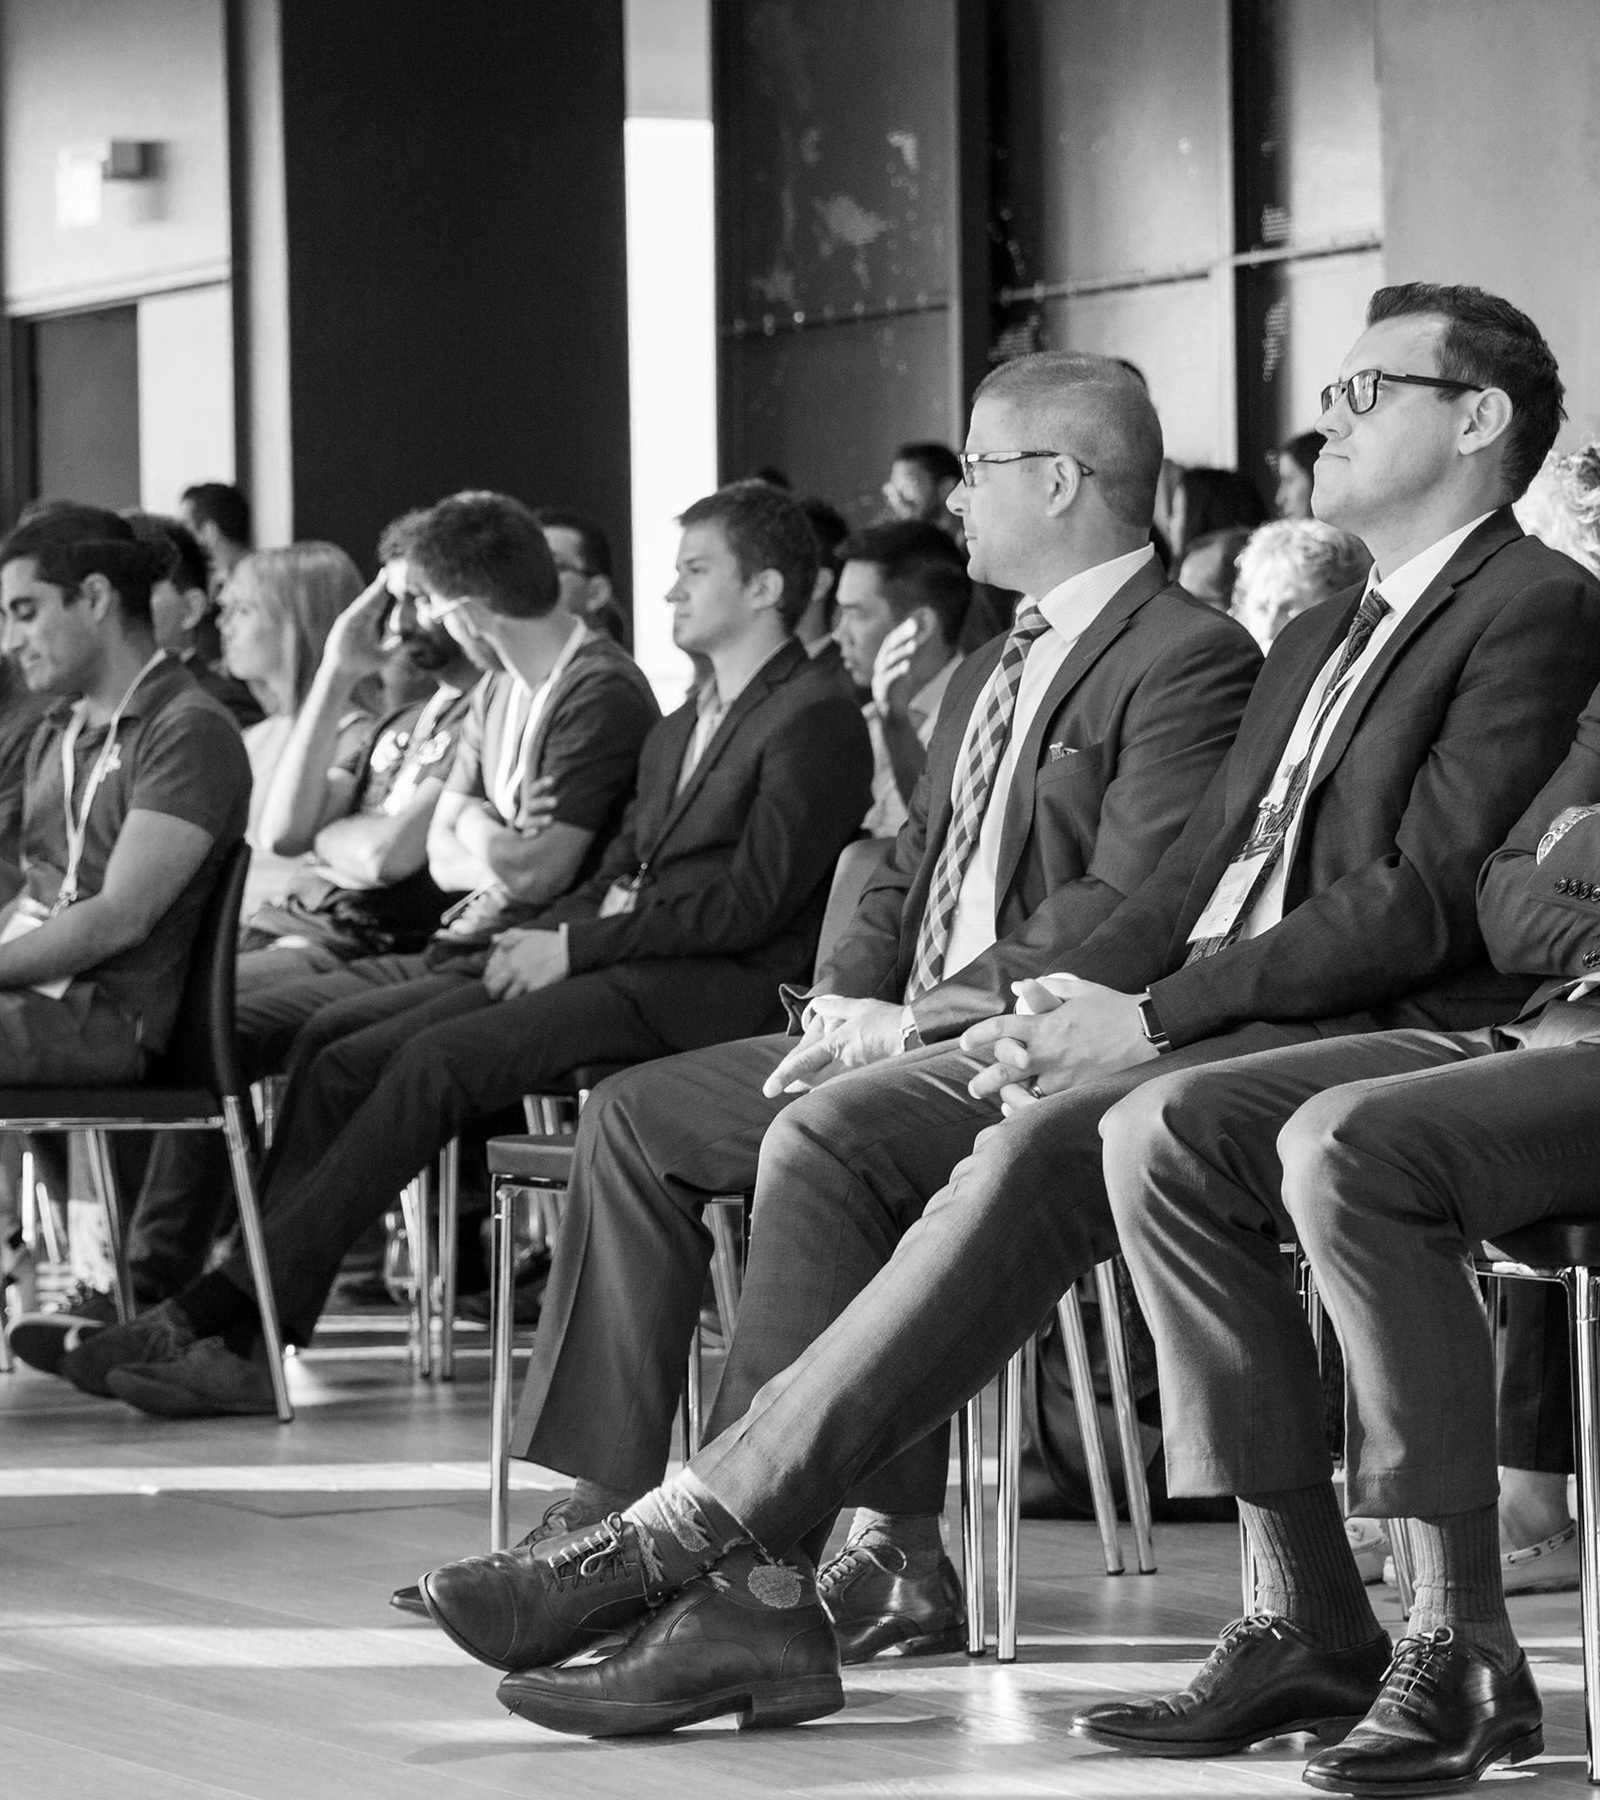 Investors, partners, and venture capitalists observing at the INFINITI LAB